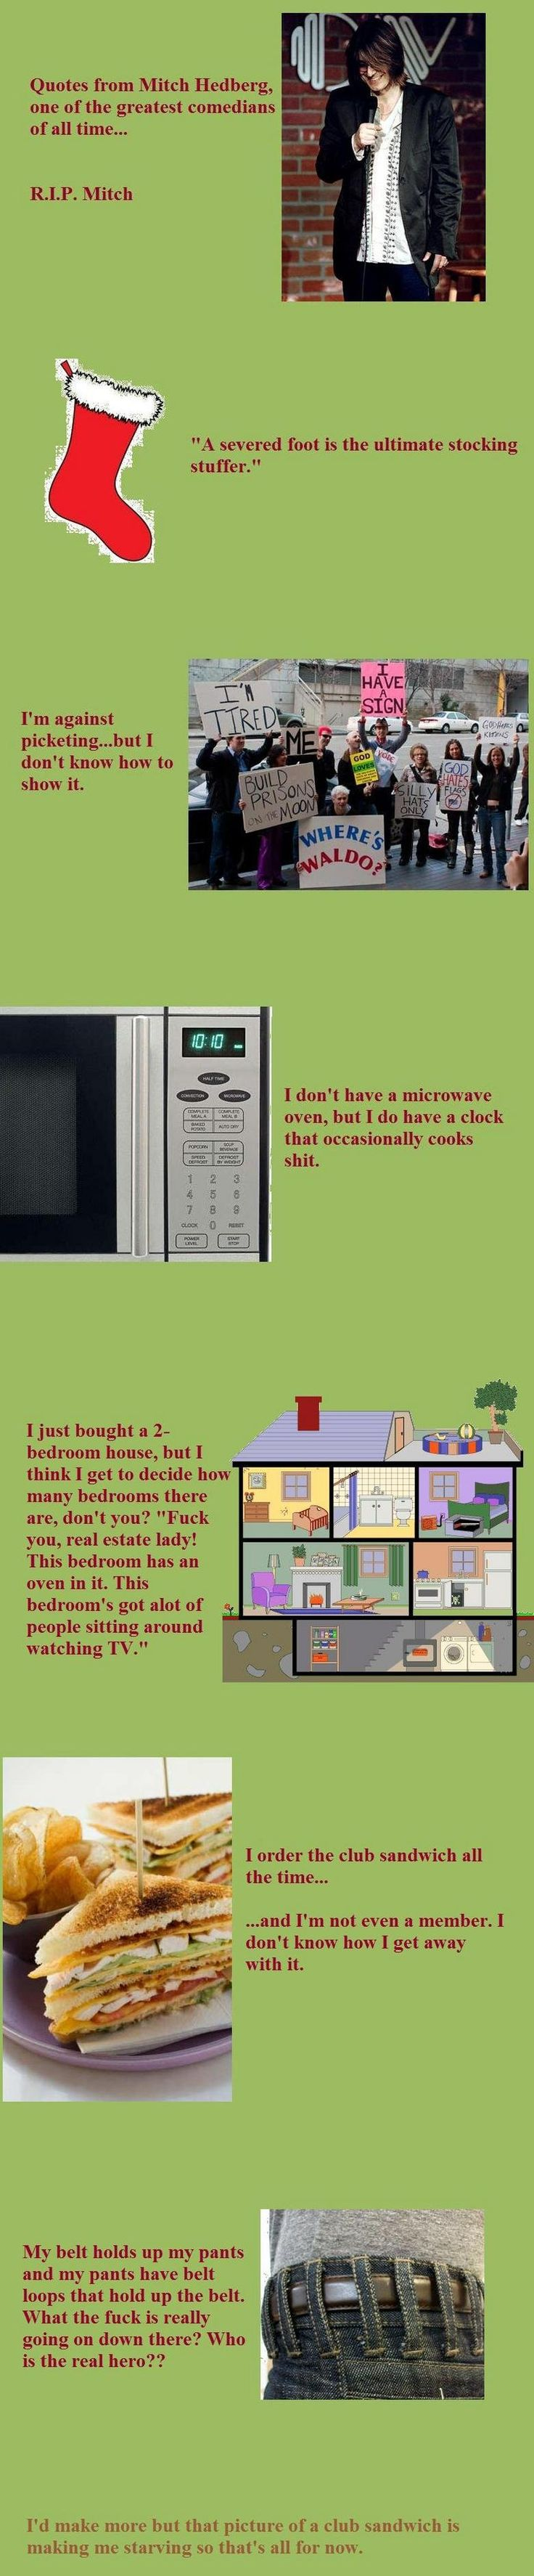 Mitch hedberg some of his best jokes